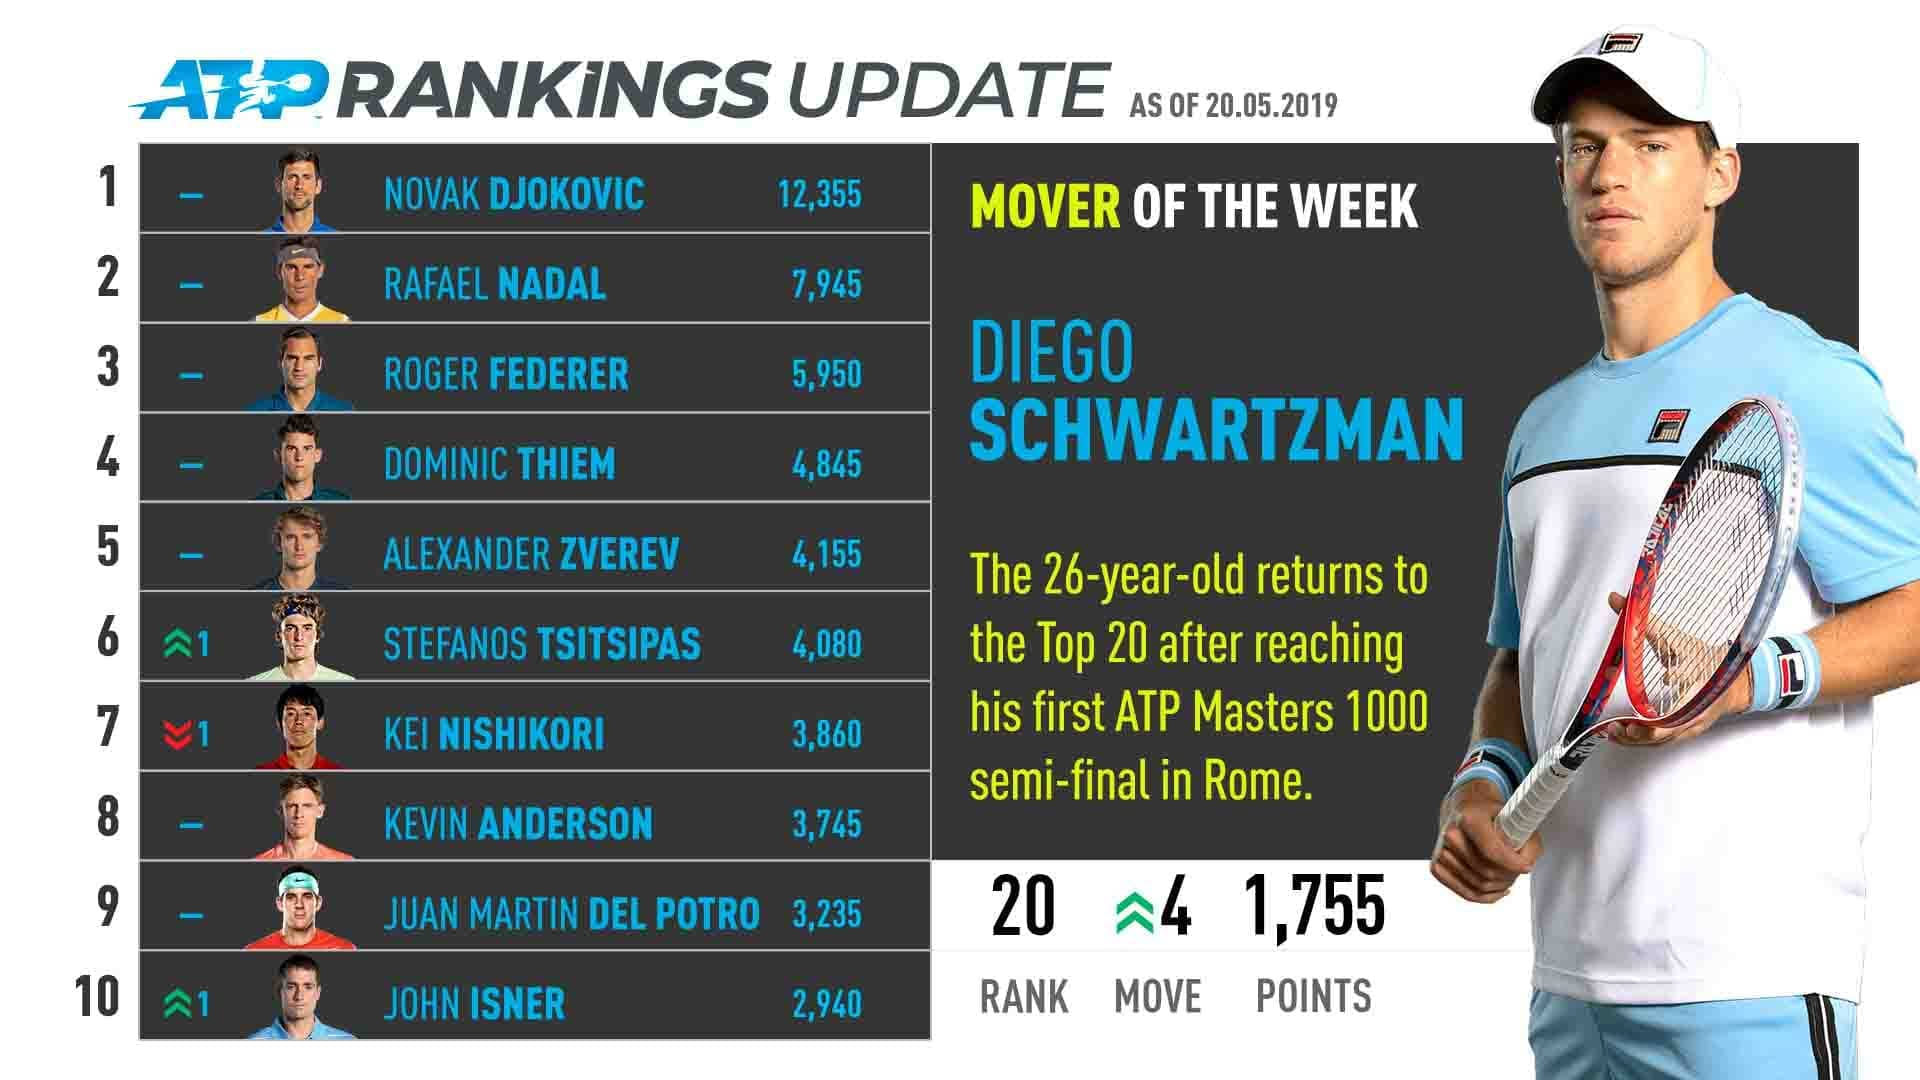 Diego Schwartzman returns to the Top 20 in the ATP Rankings for the first time since 24 February.